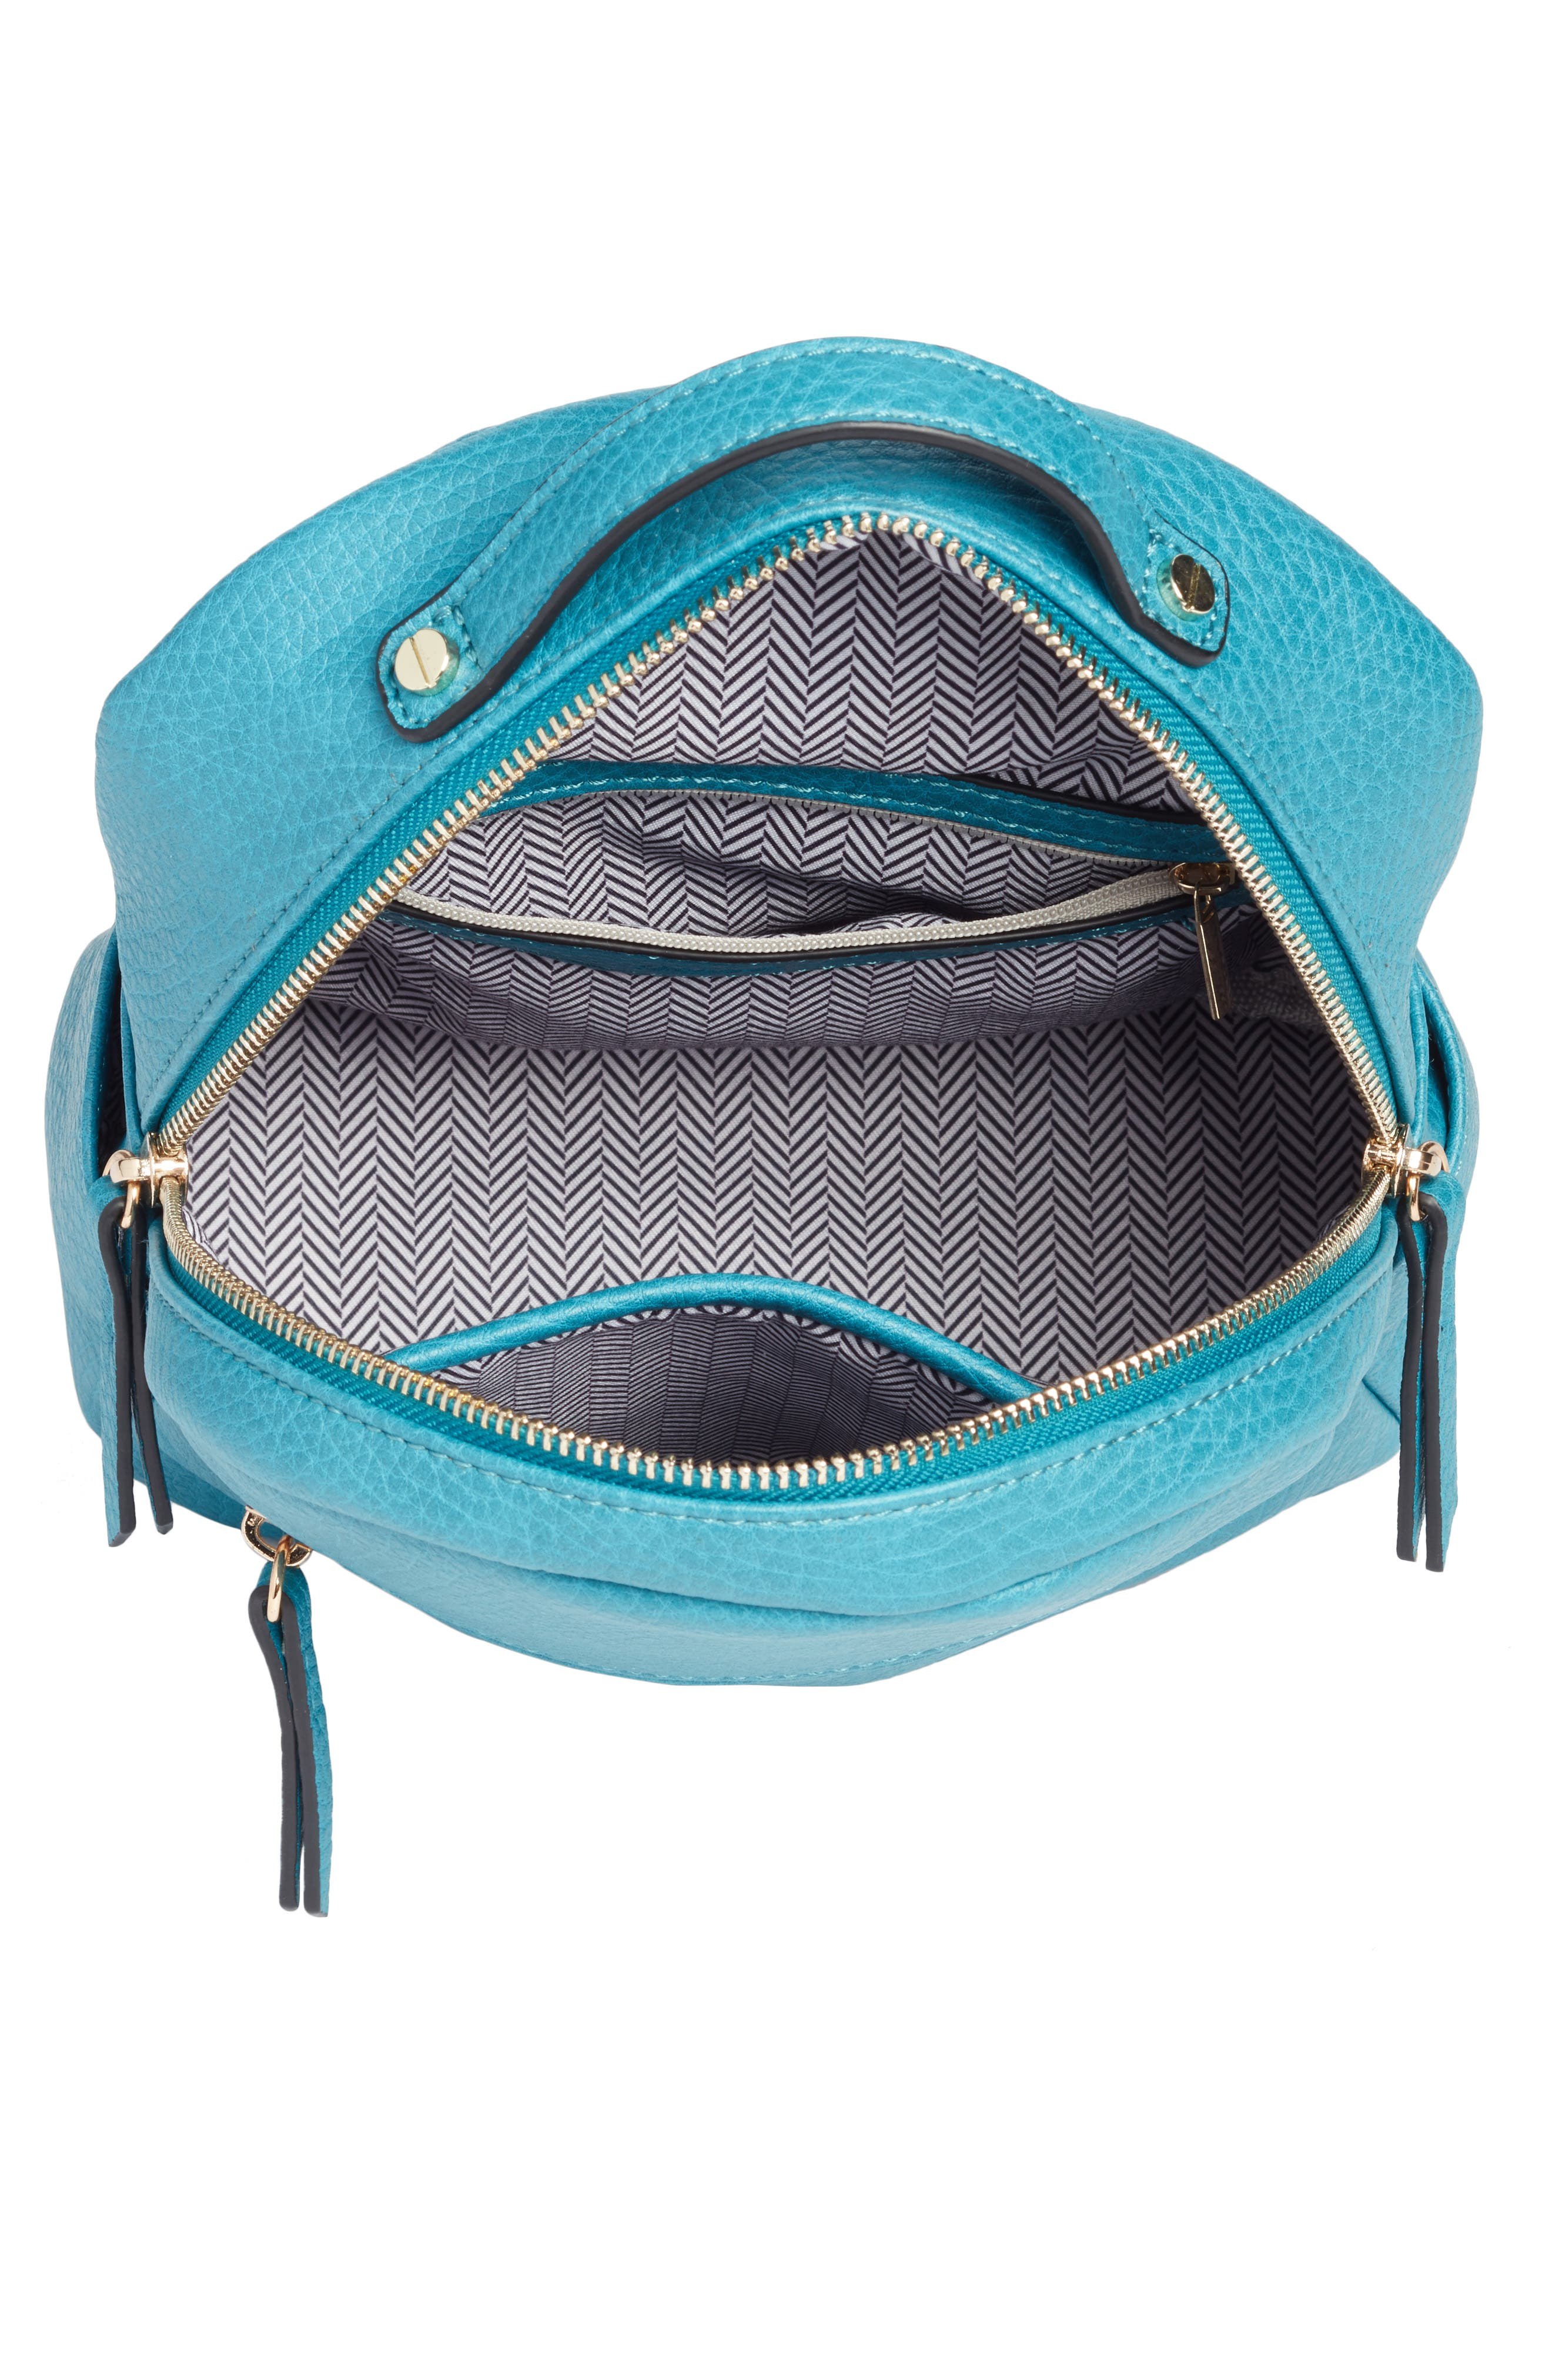 Mali + Lili Vegan Leather Backpack,                             Alternate thumbnail 4, color,                             Blue